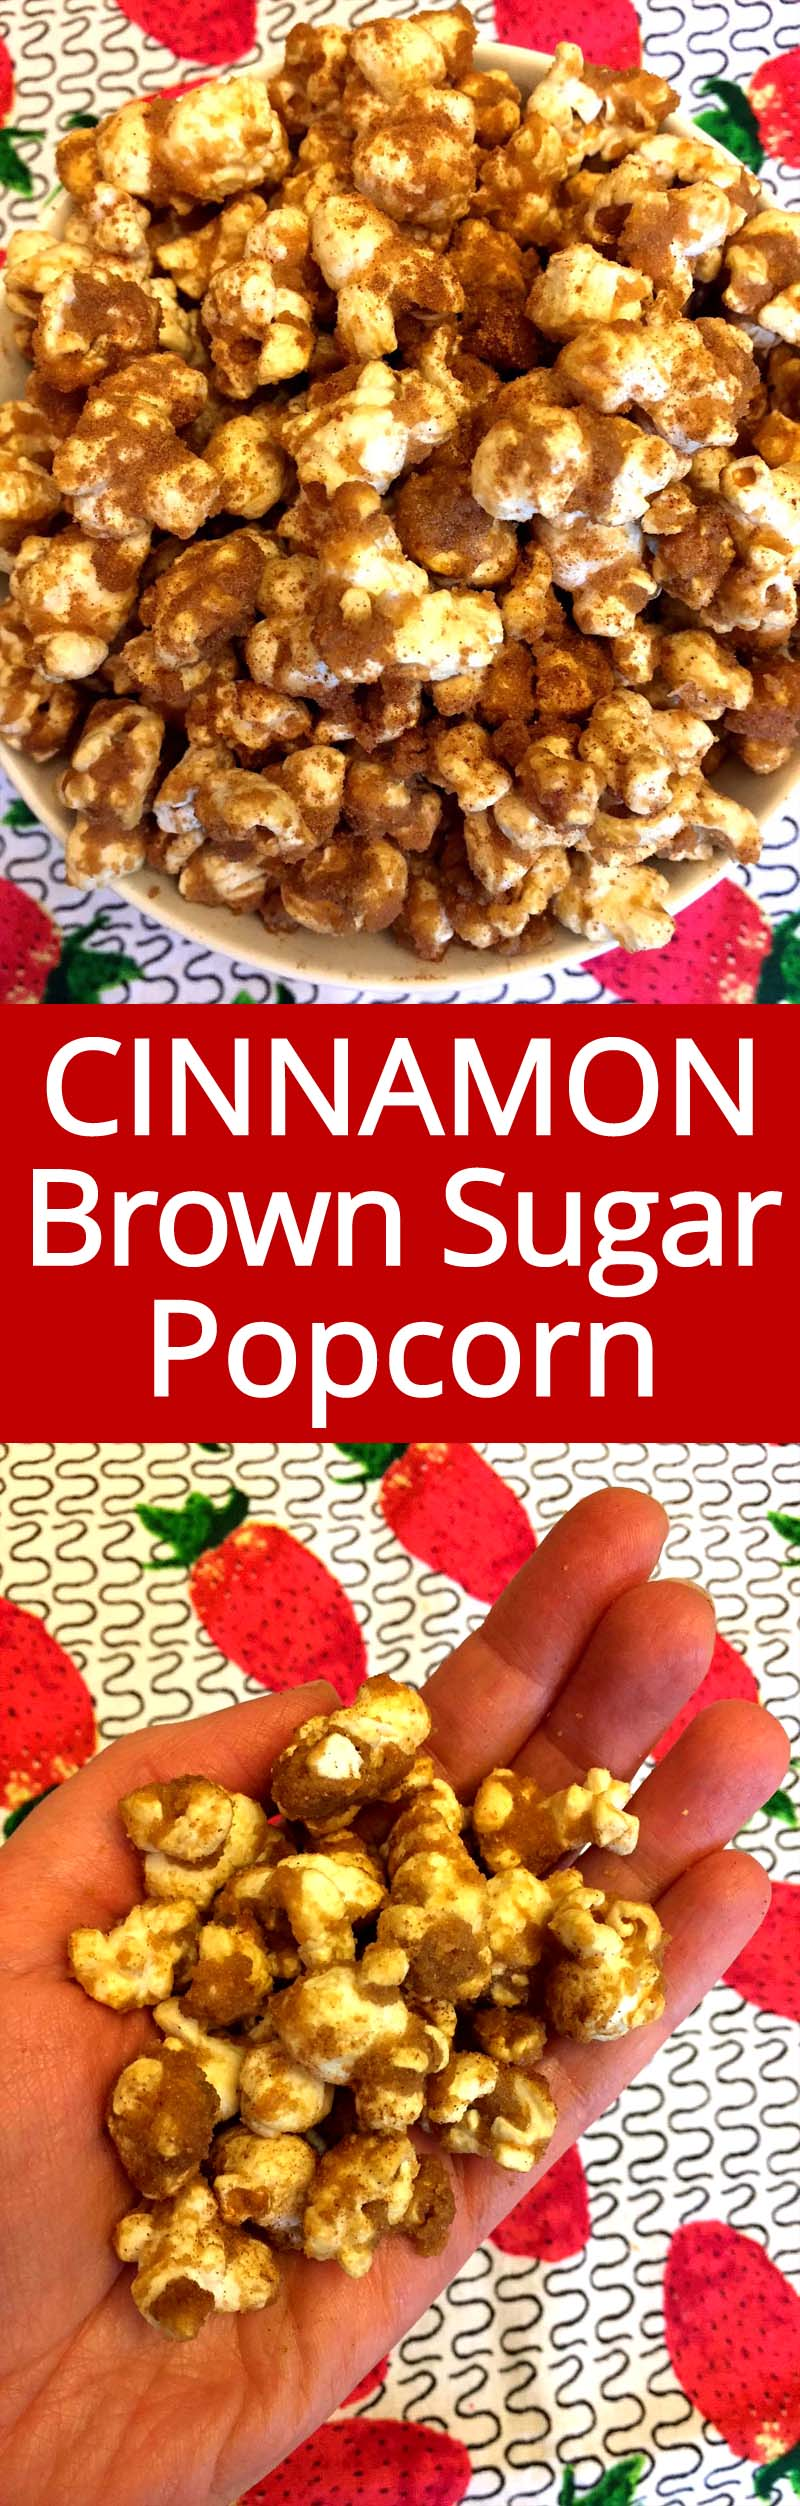 This homemade cinnamon brown sugar popcorn is so addictive! I just can't stop eating it!